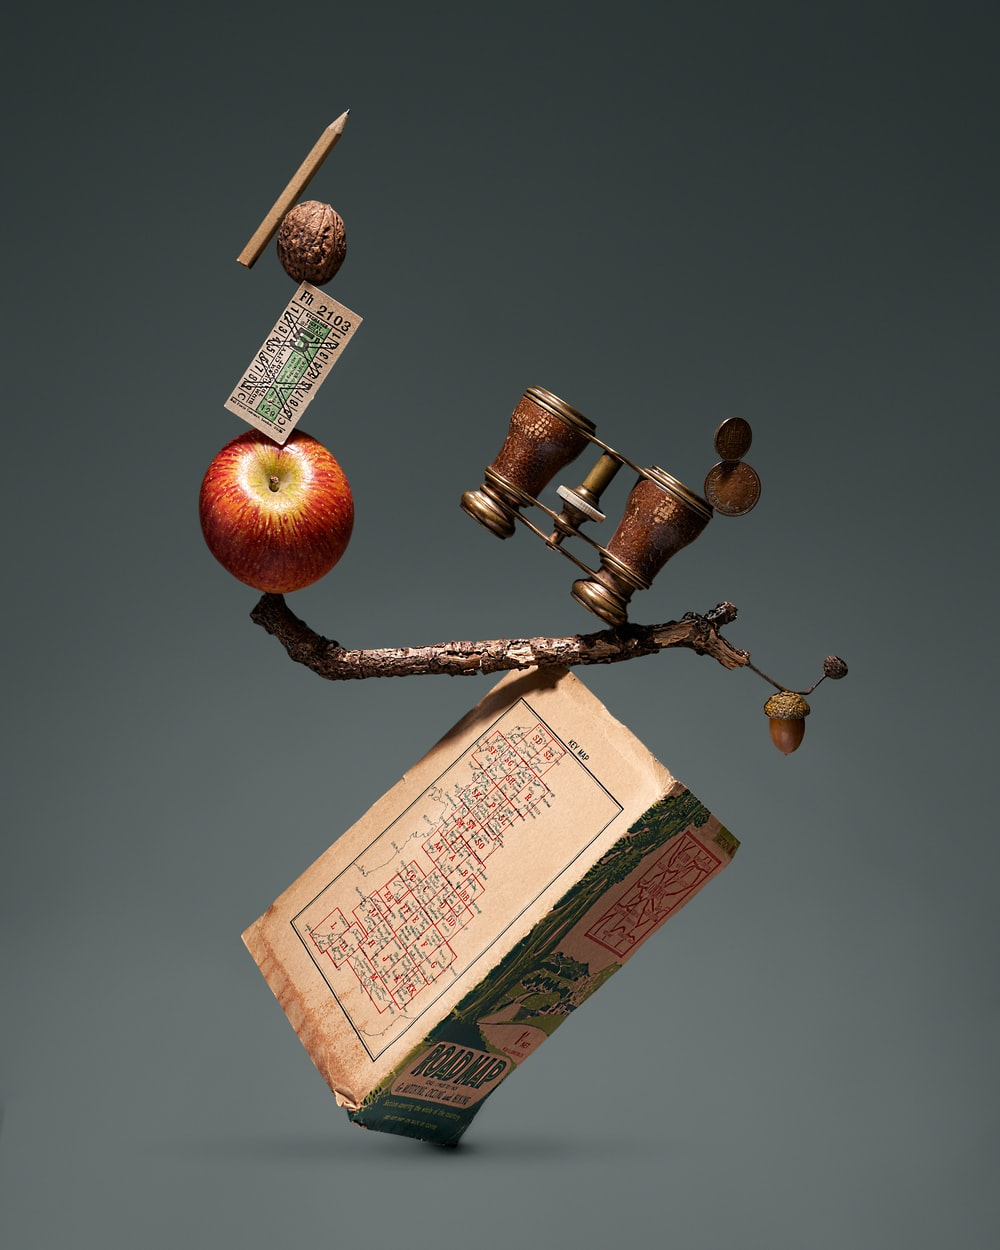 red apple fruit on brown wooden stick